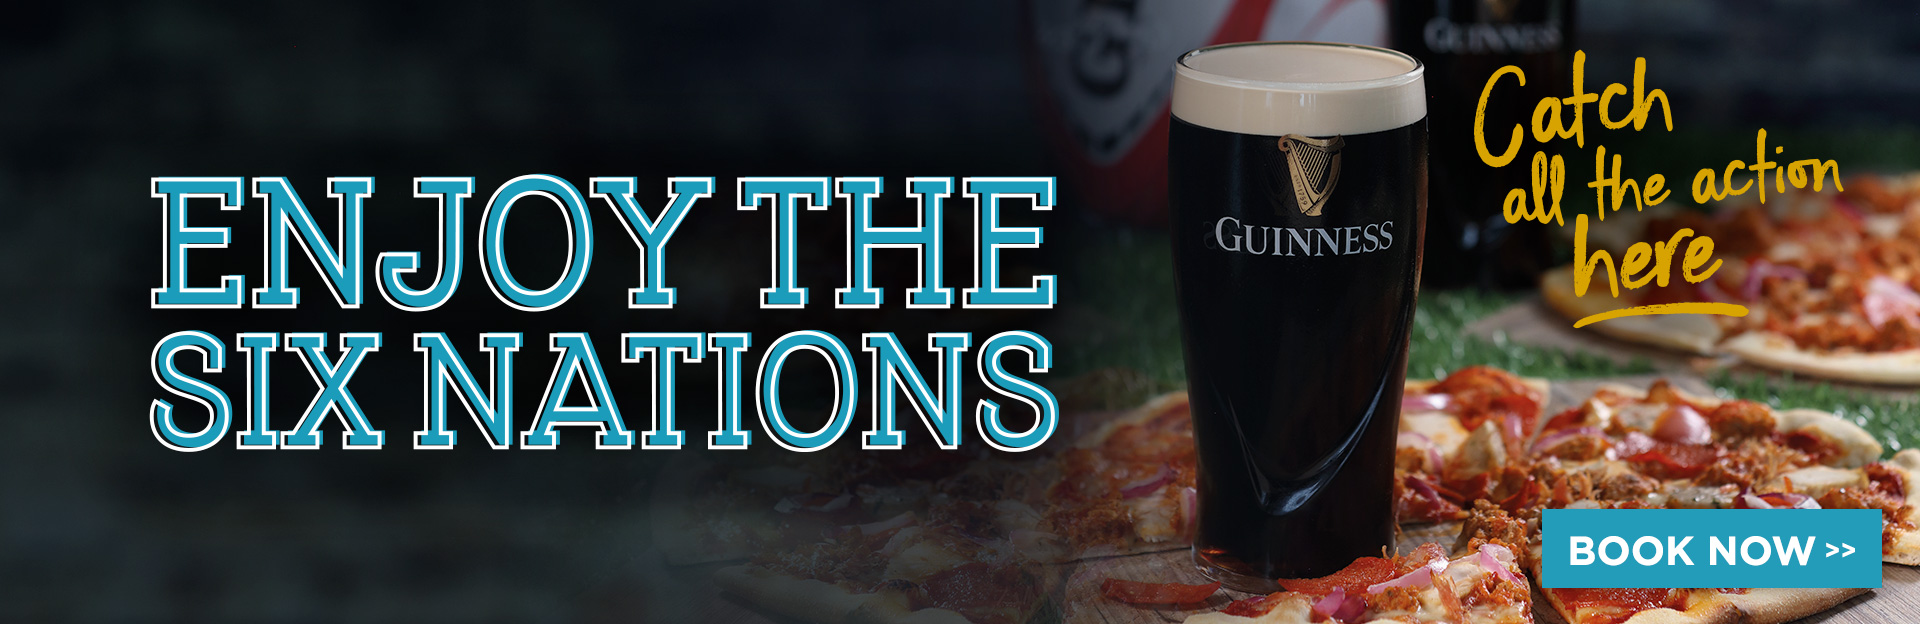 Six Nations at The Red Lion